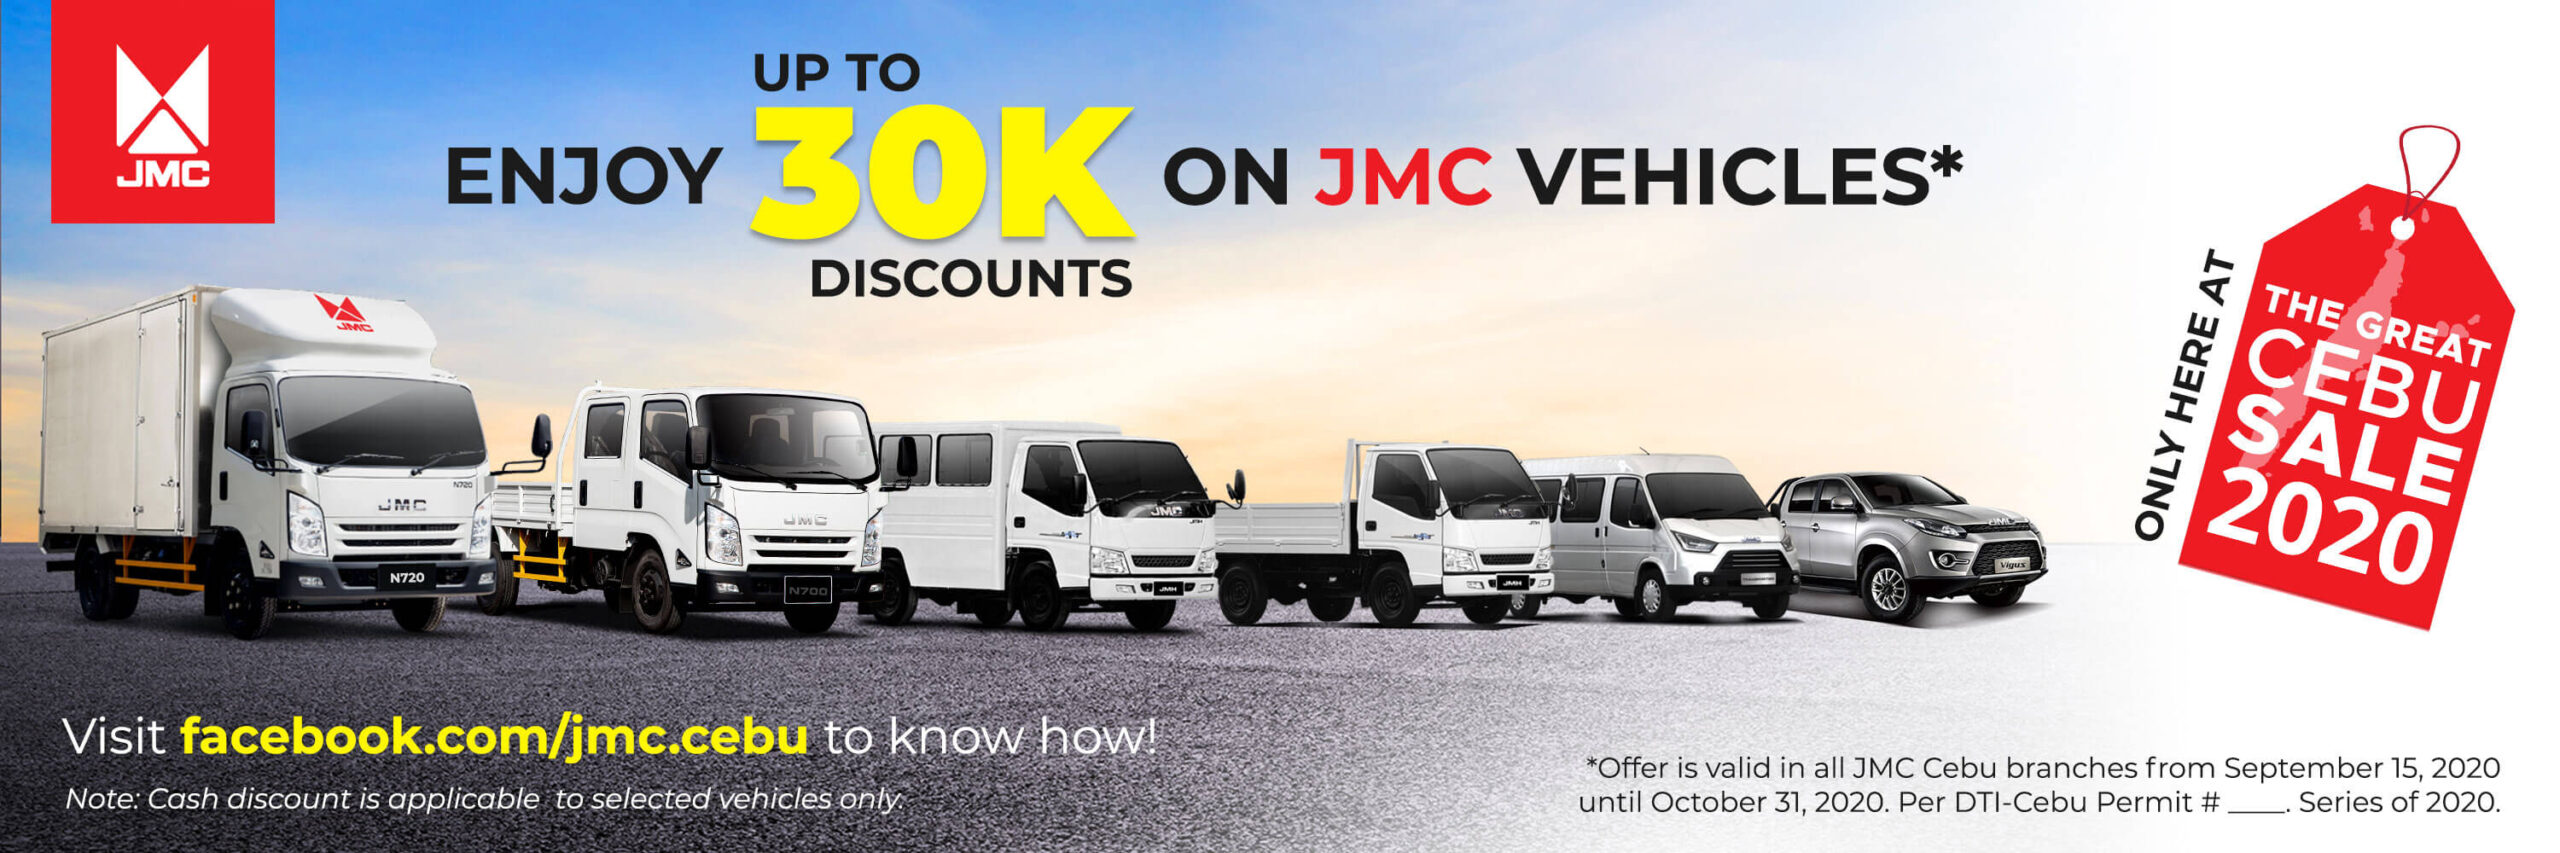 JMC Cebu offers up to P30K discount on vehicles